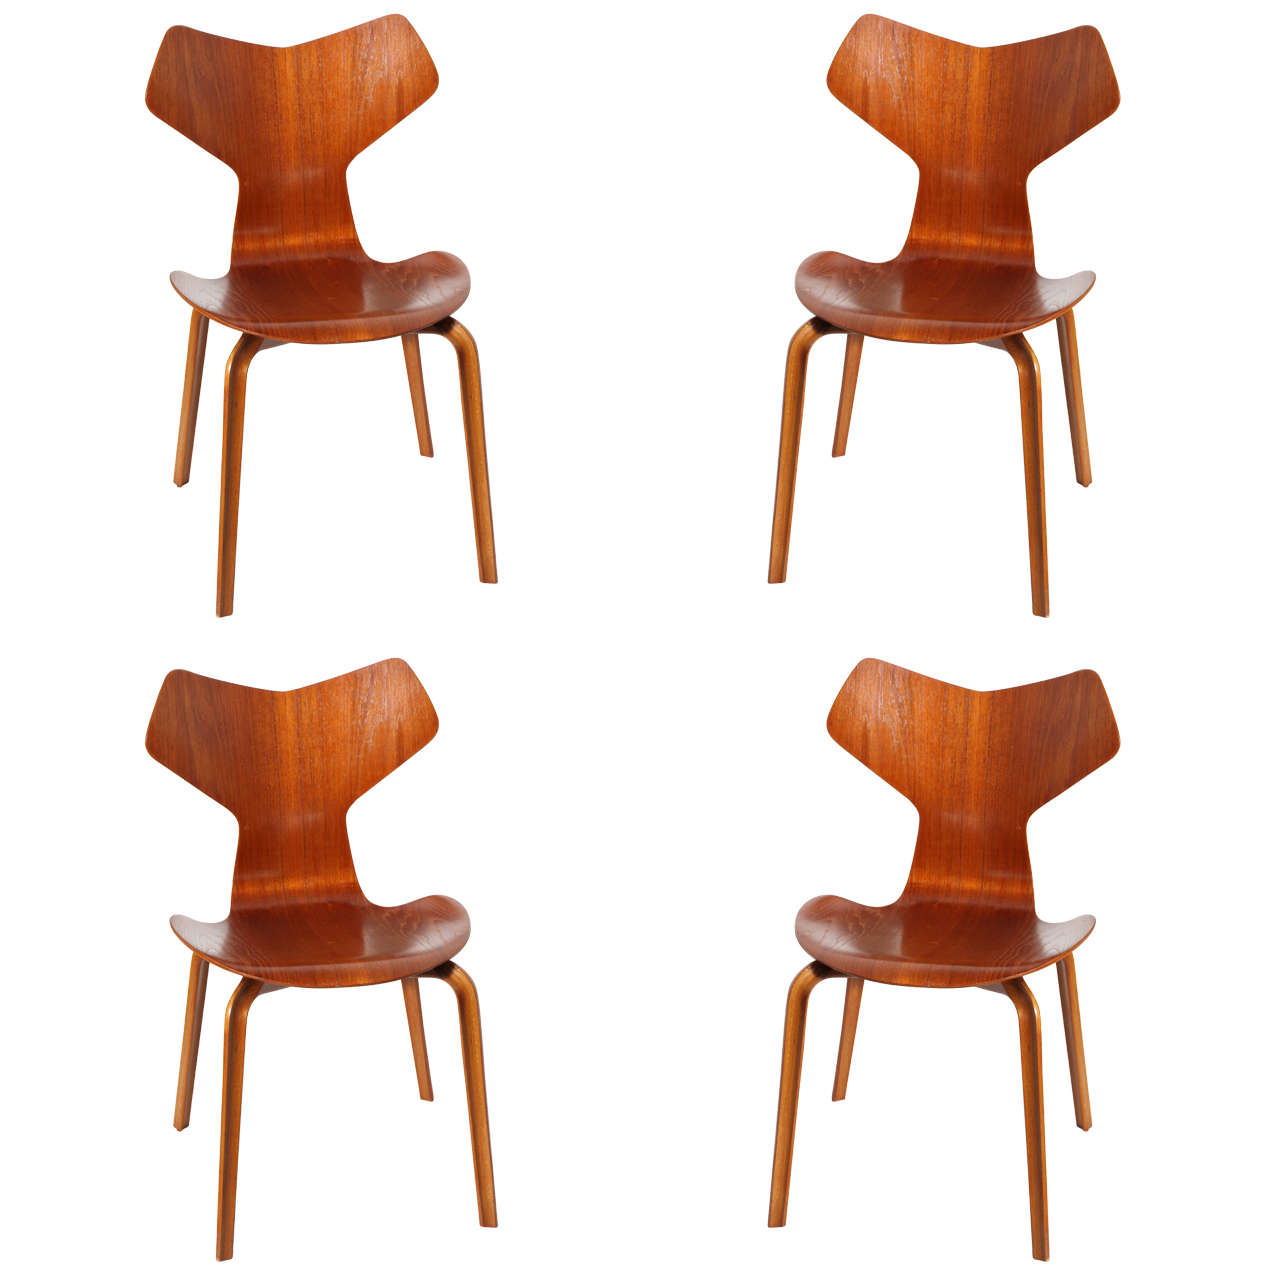 Grand prix dining chairs by arne jacobsen set of four for sale at 1stdibs - Chaise grand prix jacobsen ...